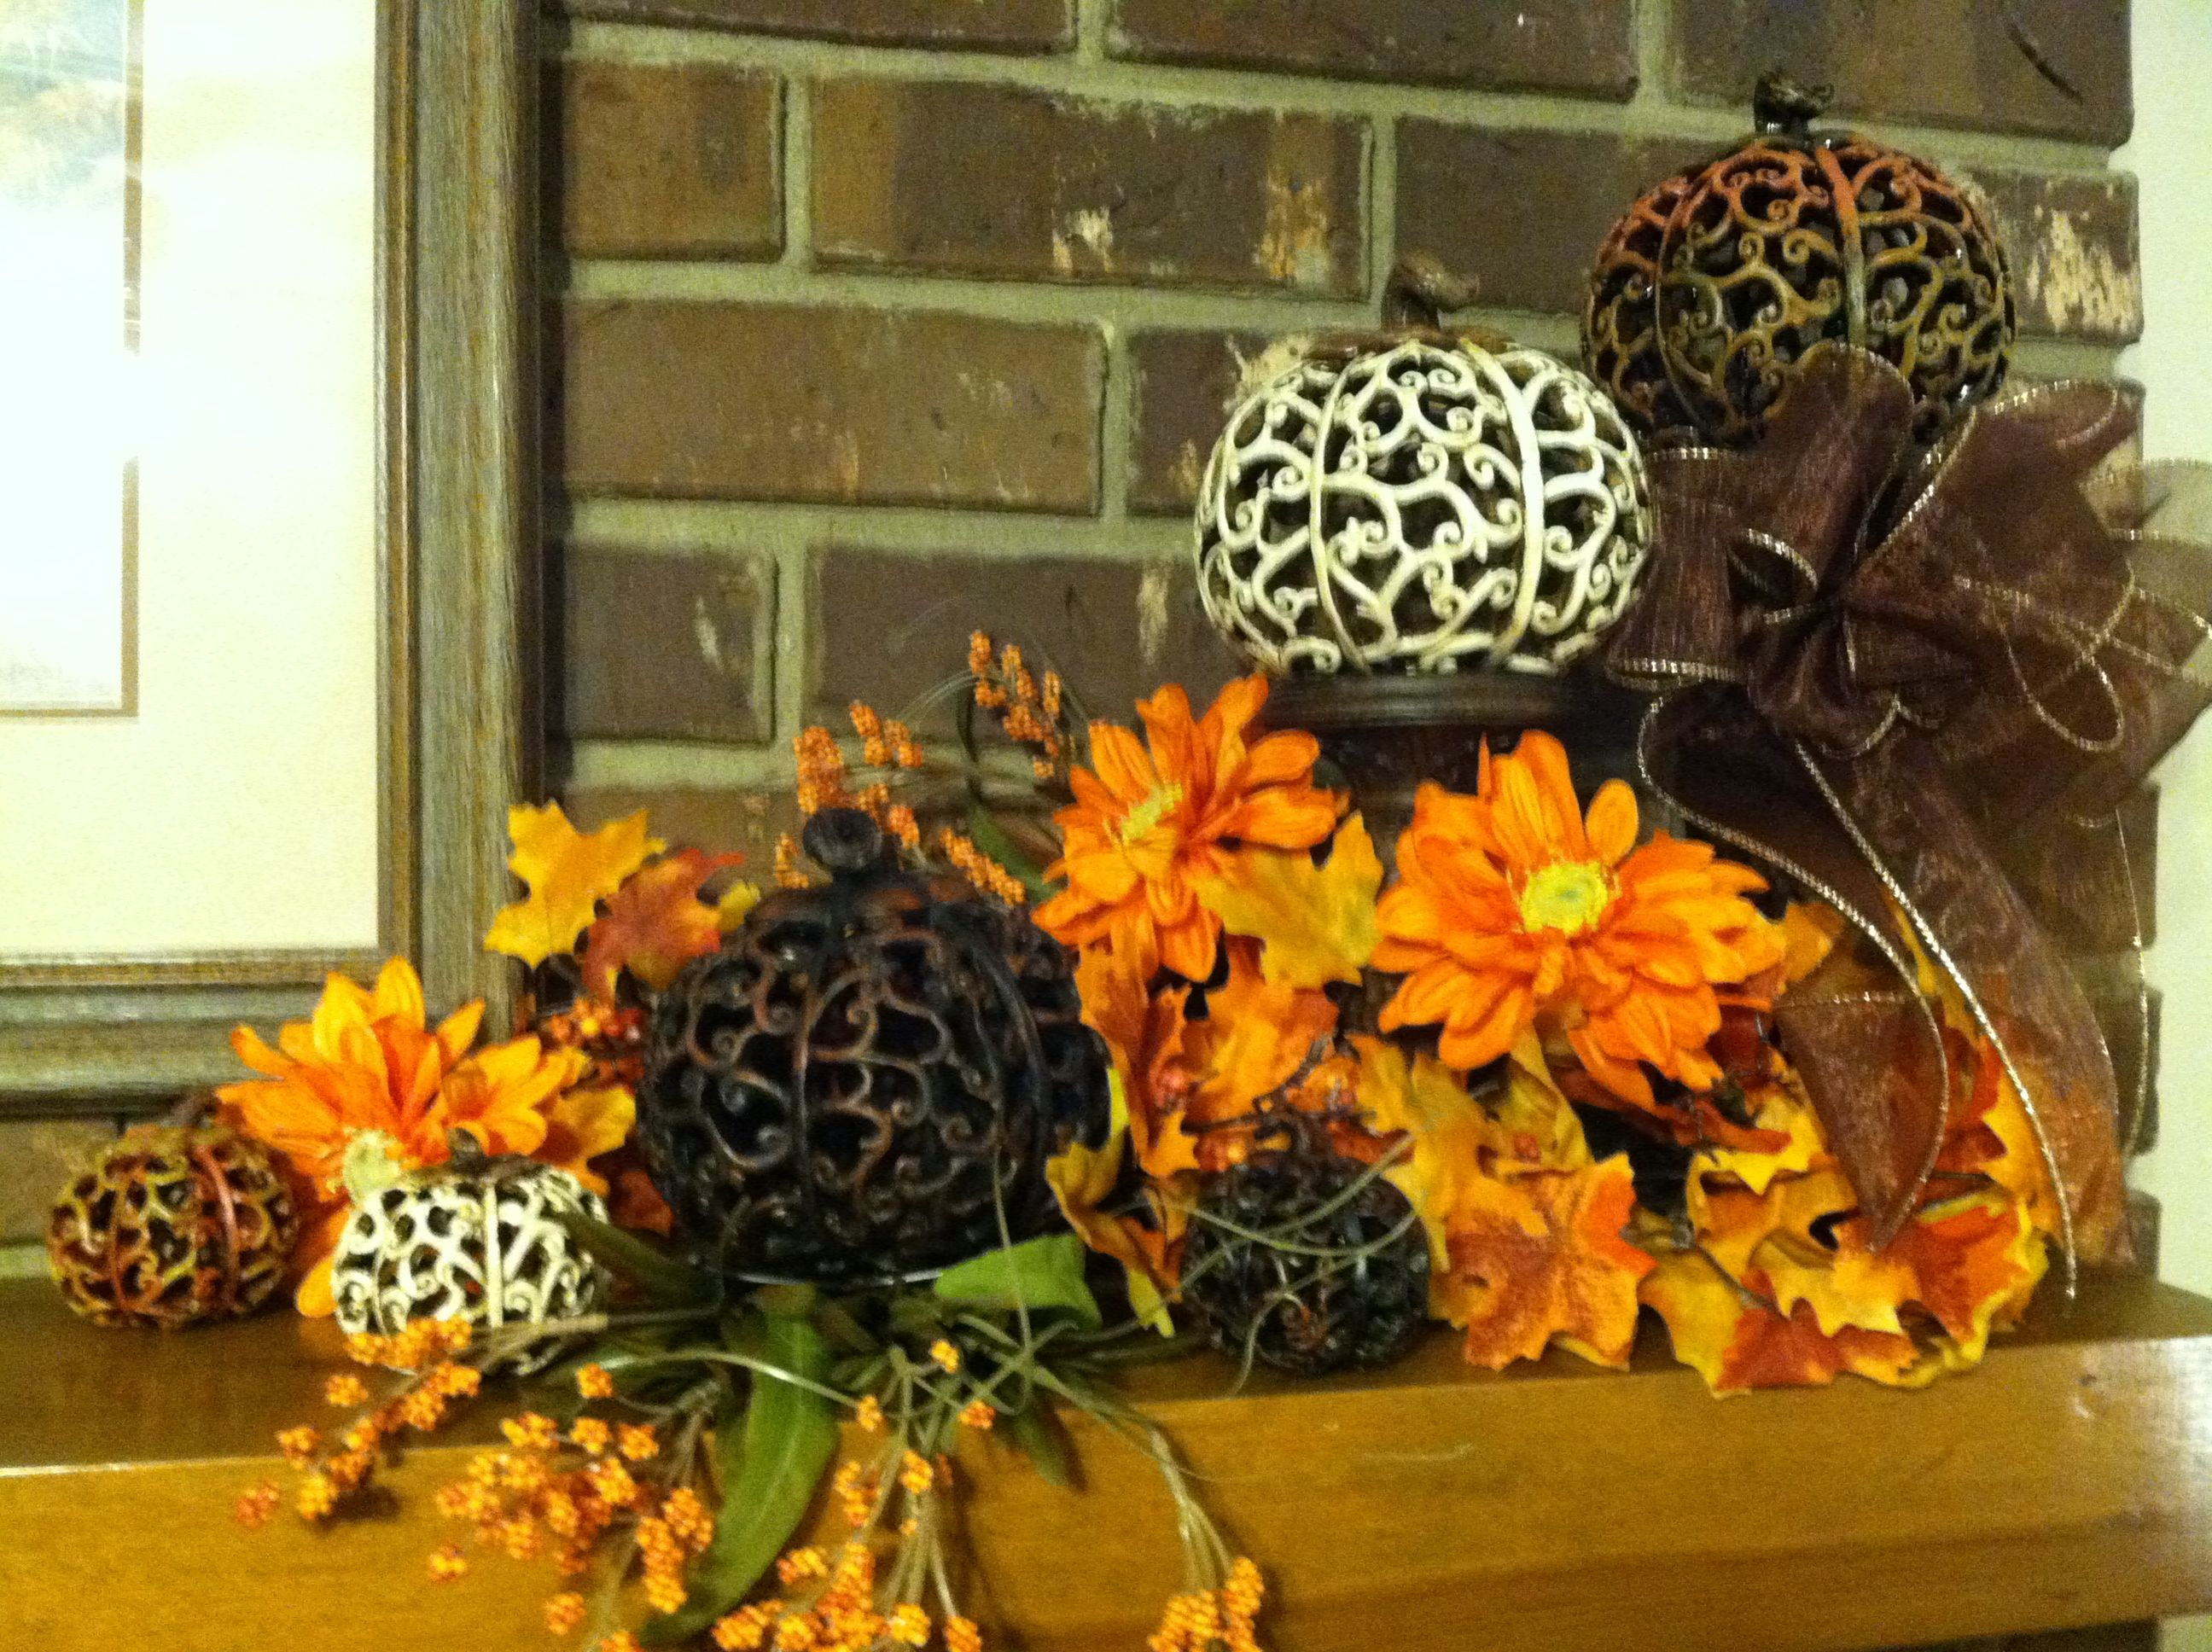 Fall decorations pumpkins from hobby lobby on candlesticks